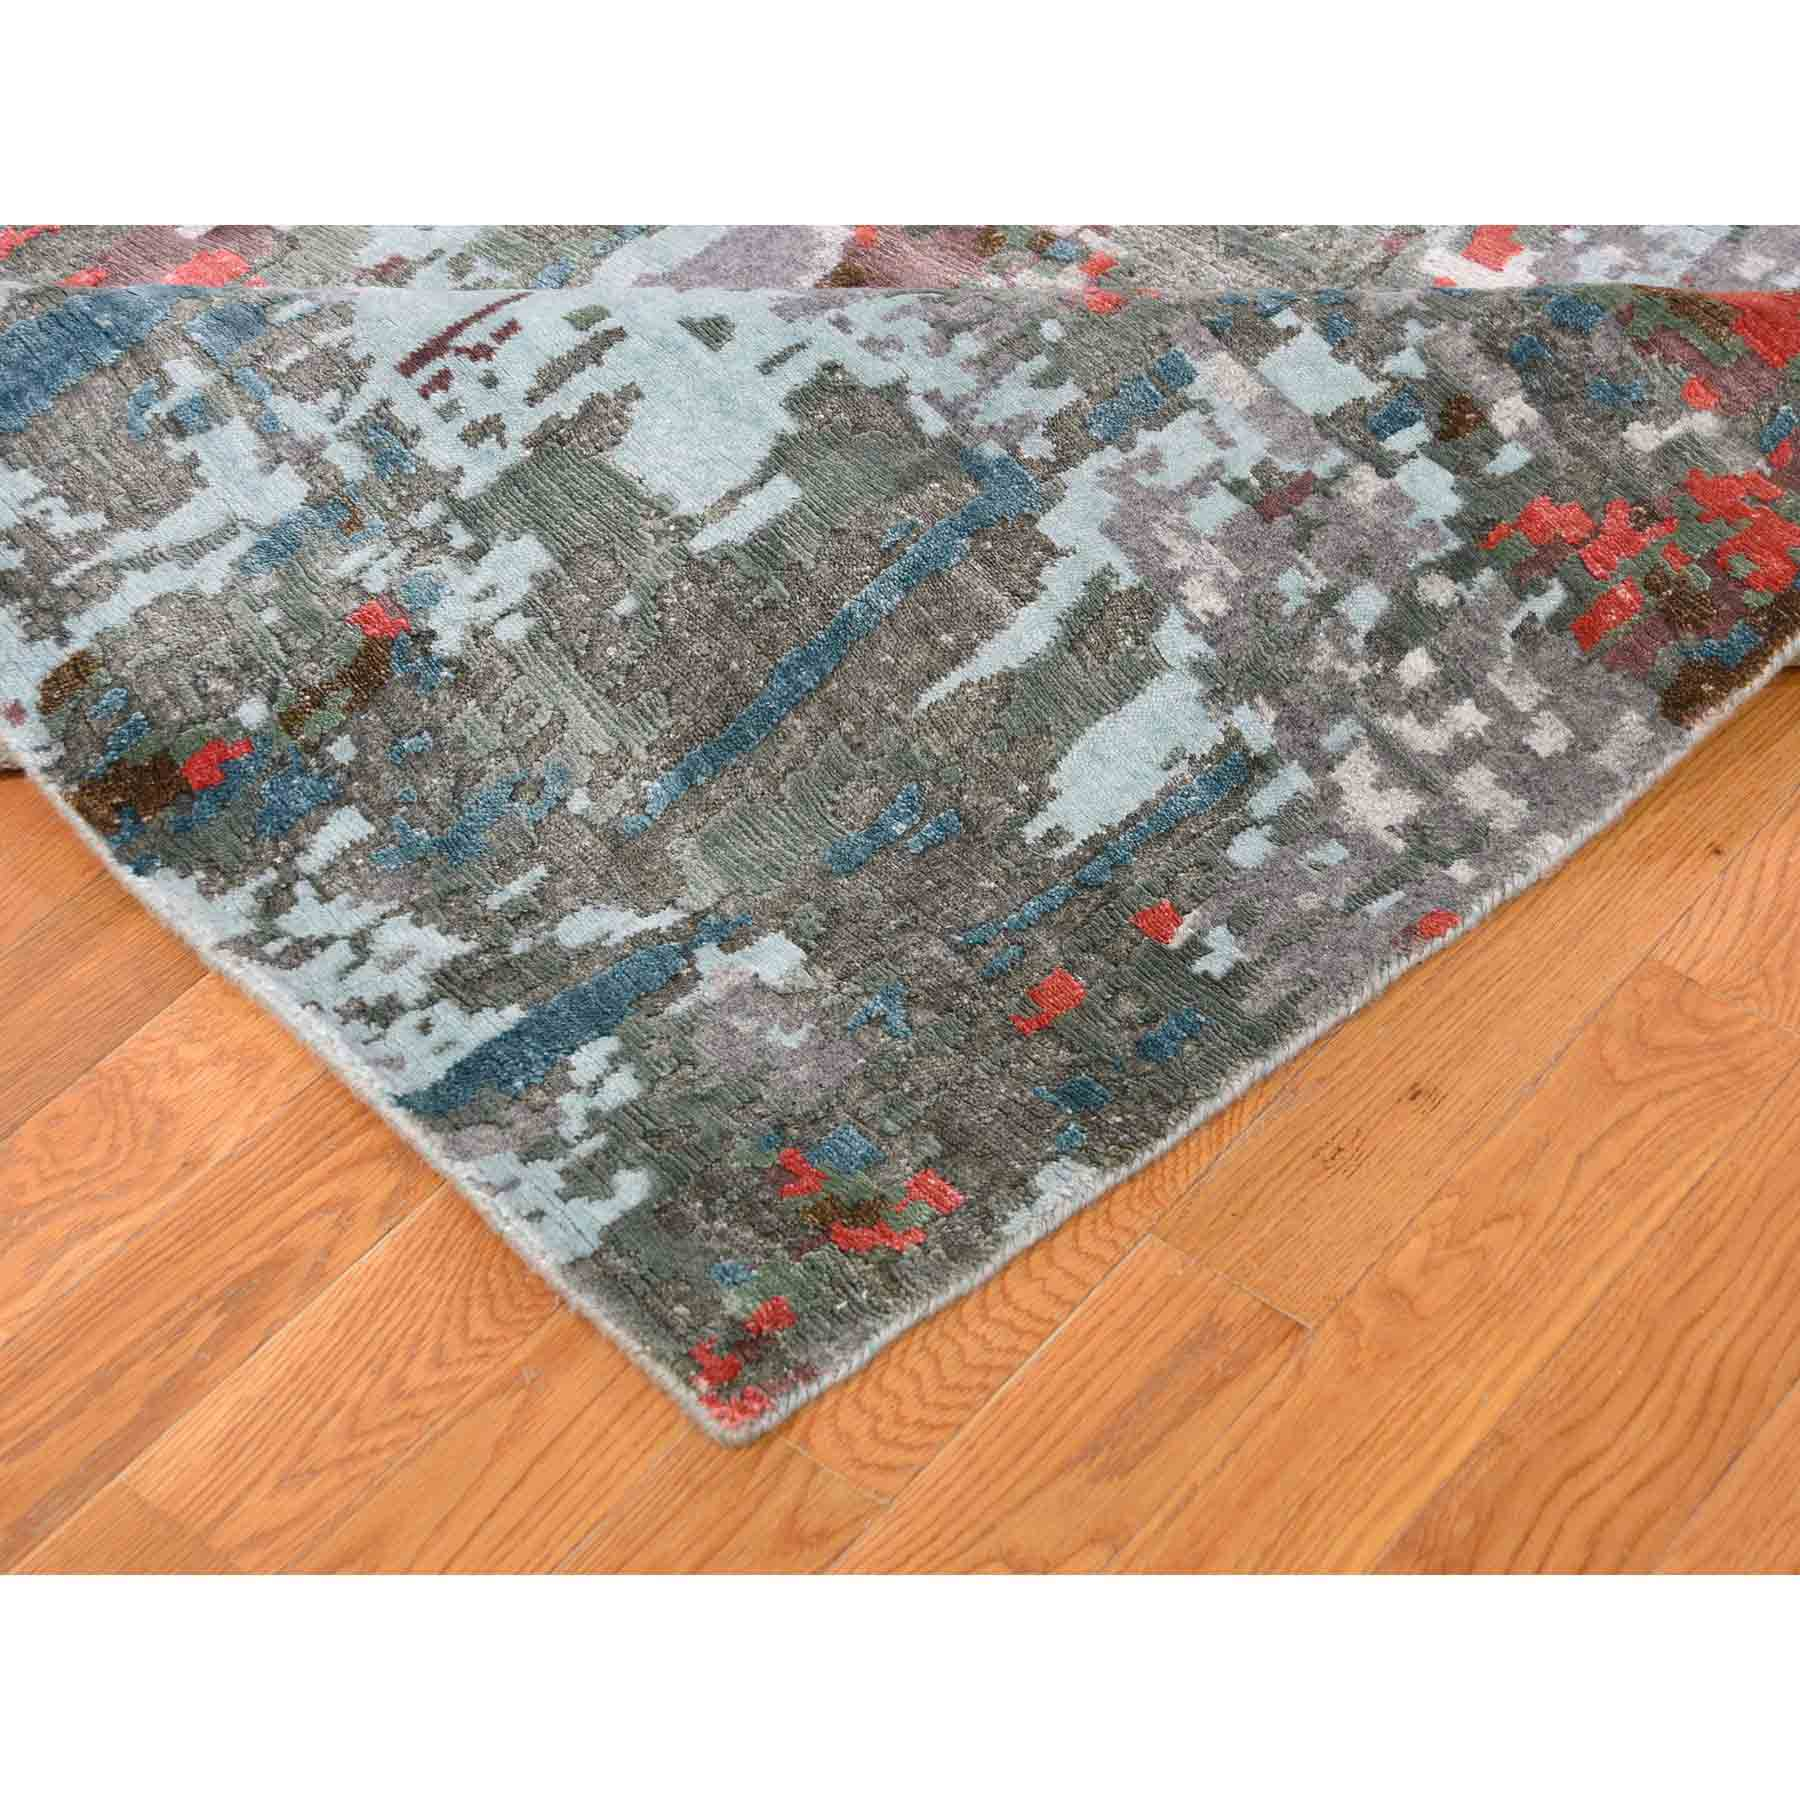 Modern-and-Contemporary-Hand-Knotted-Rug-231005